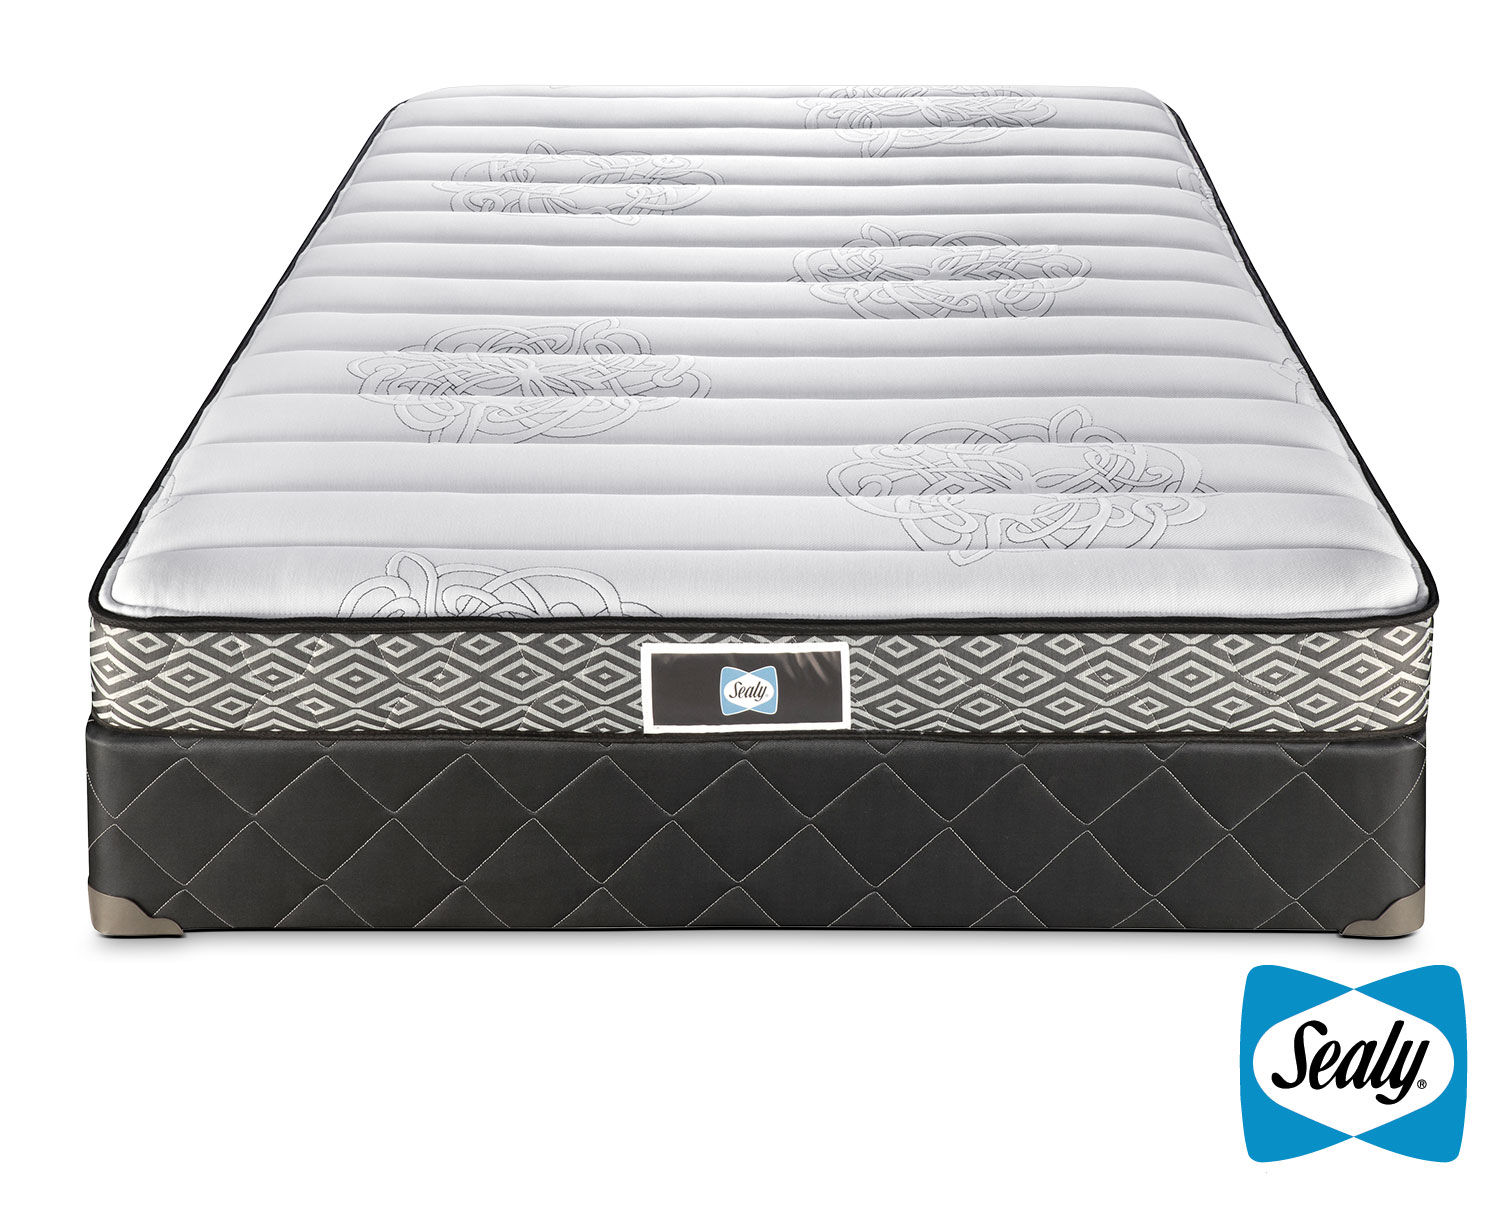 Sealy Glacier Firm Queen Mattress and Boxspring Set